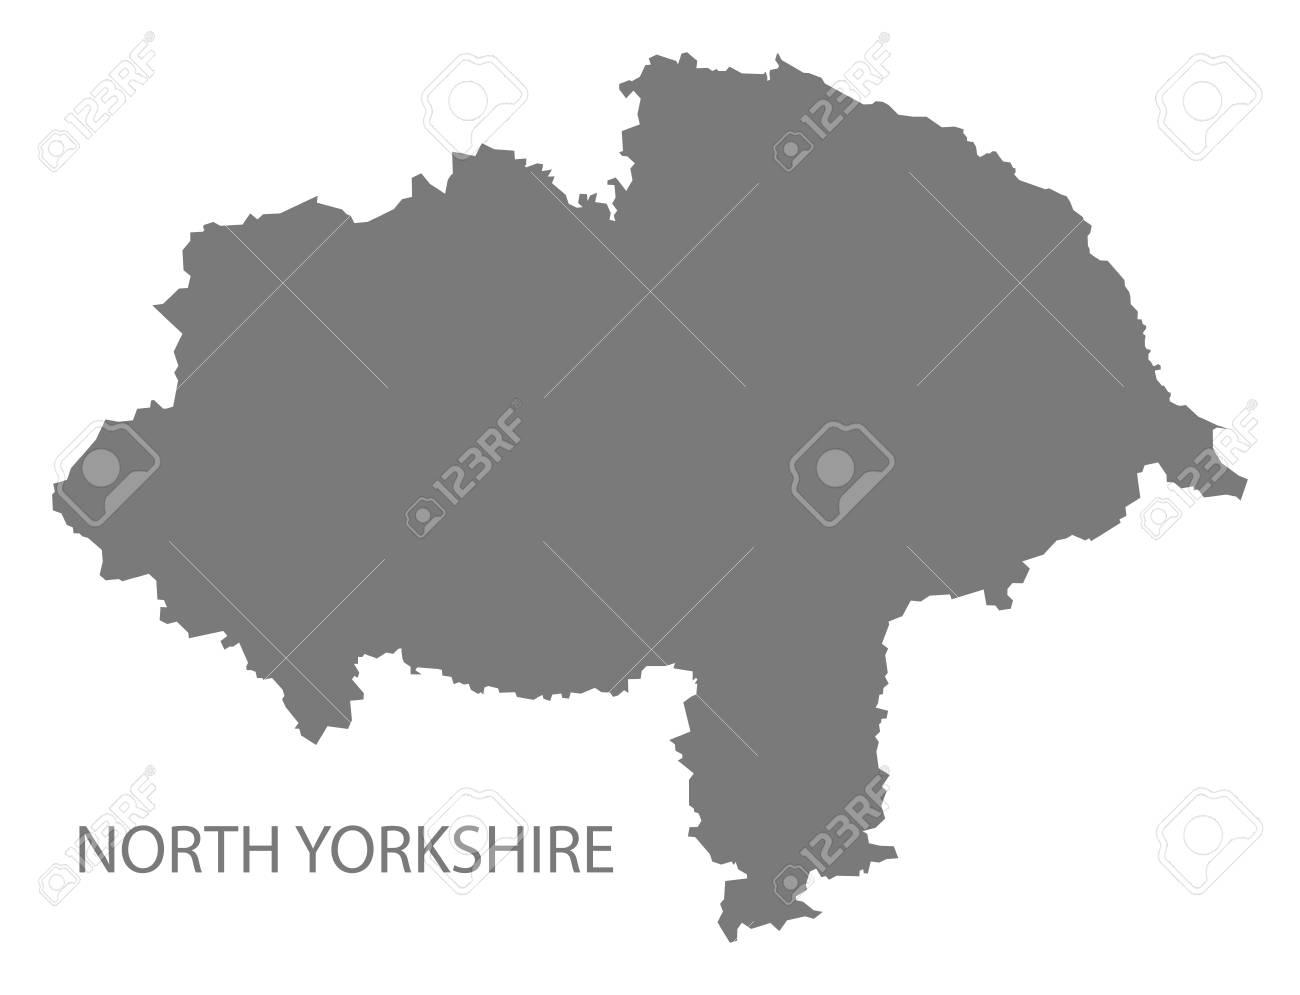 Map Of England Showing Yorkshire.North Yorkshire County Map England Uk Grey Illustration Silhouette